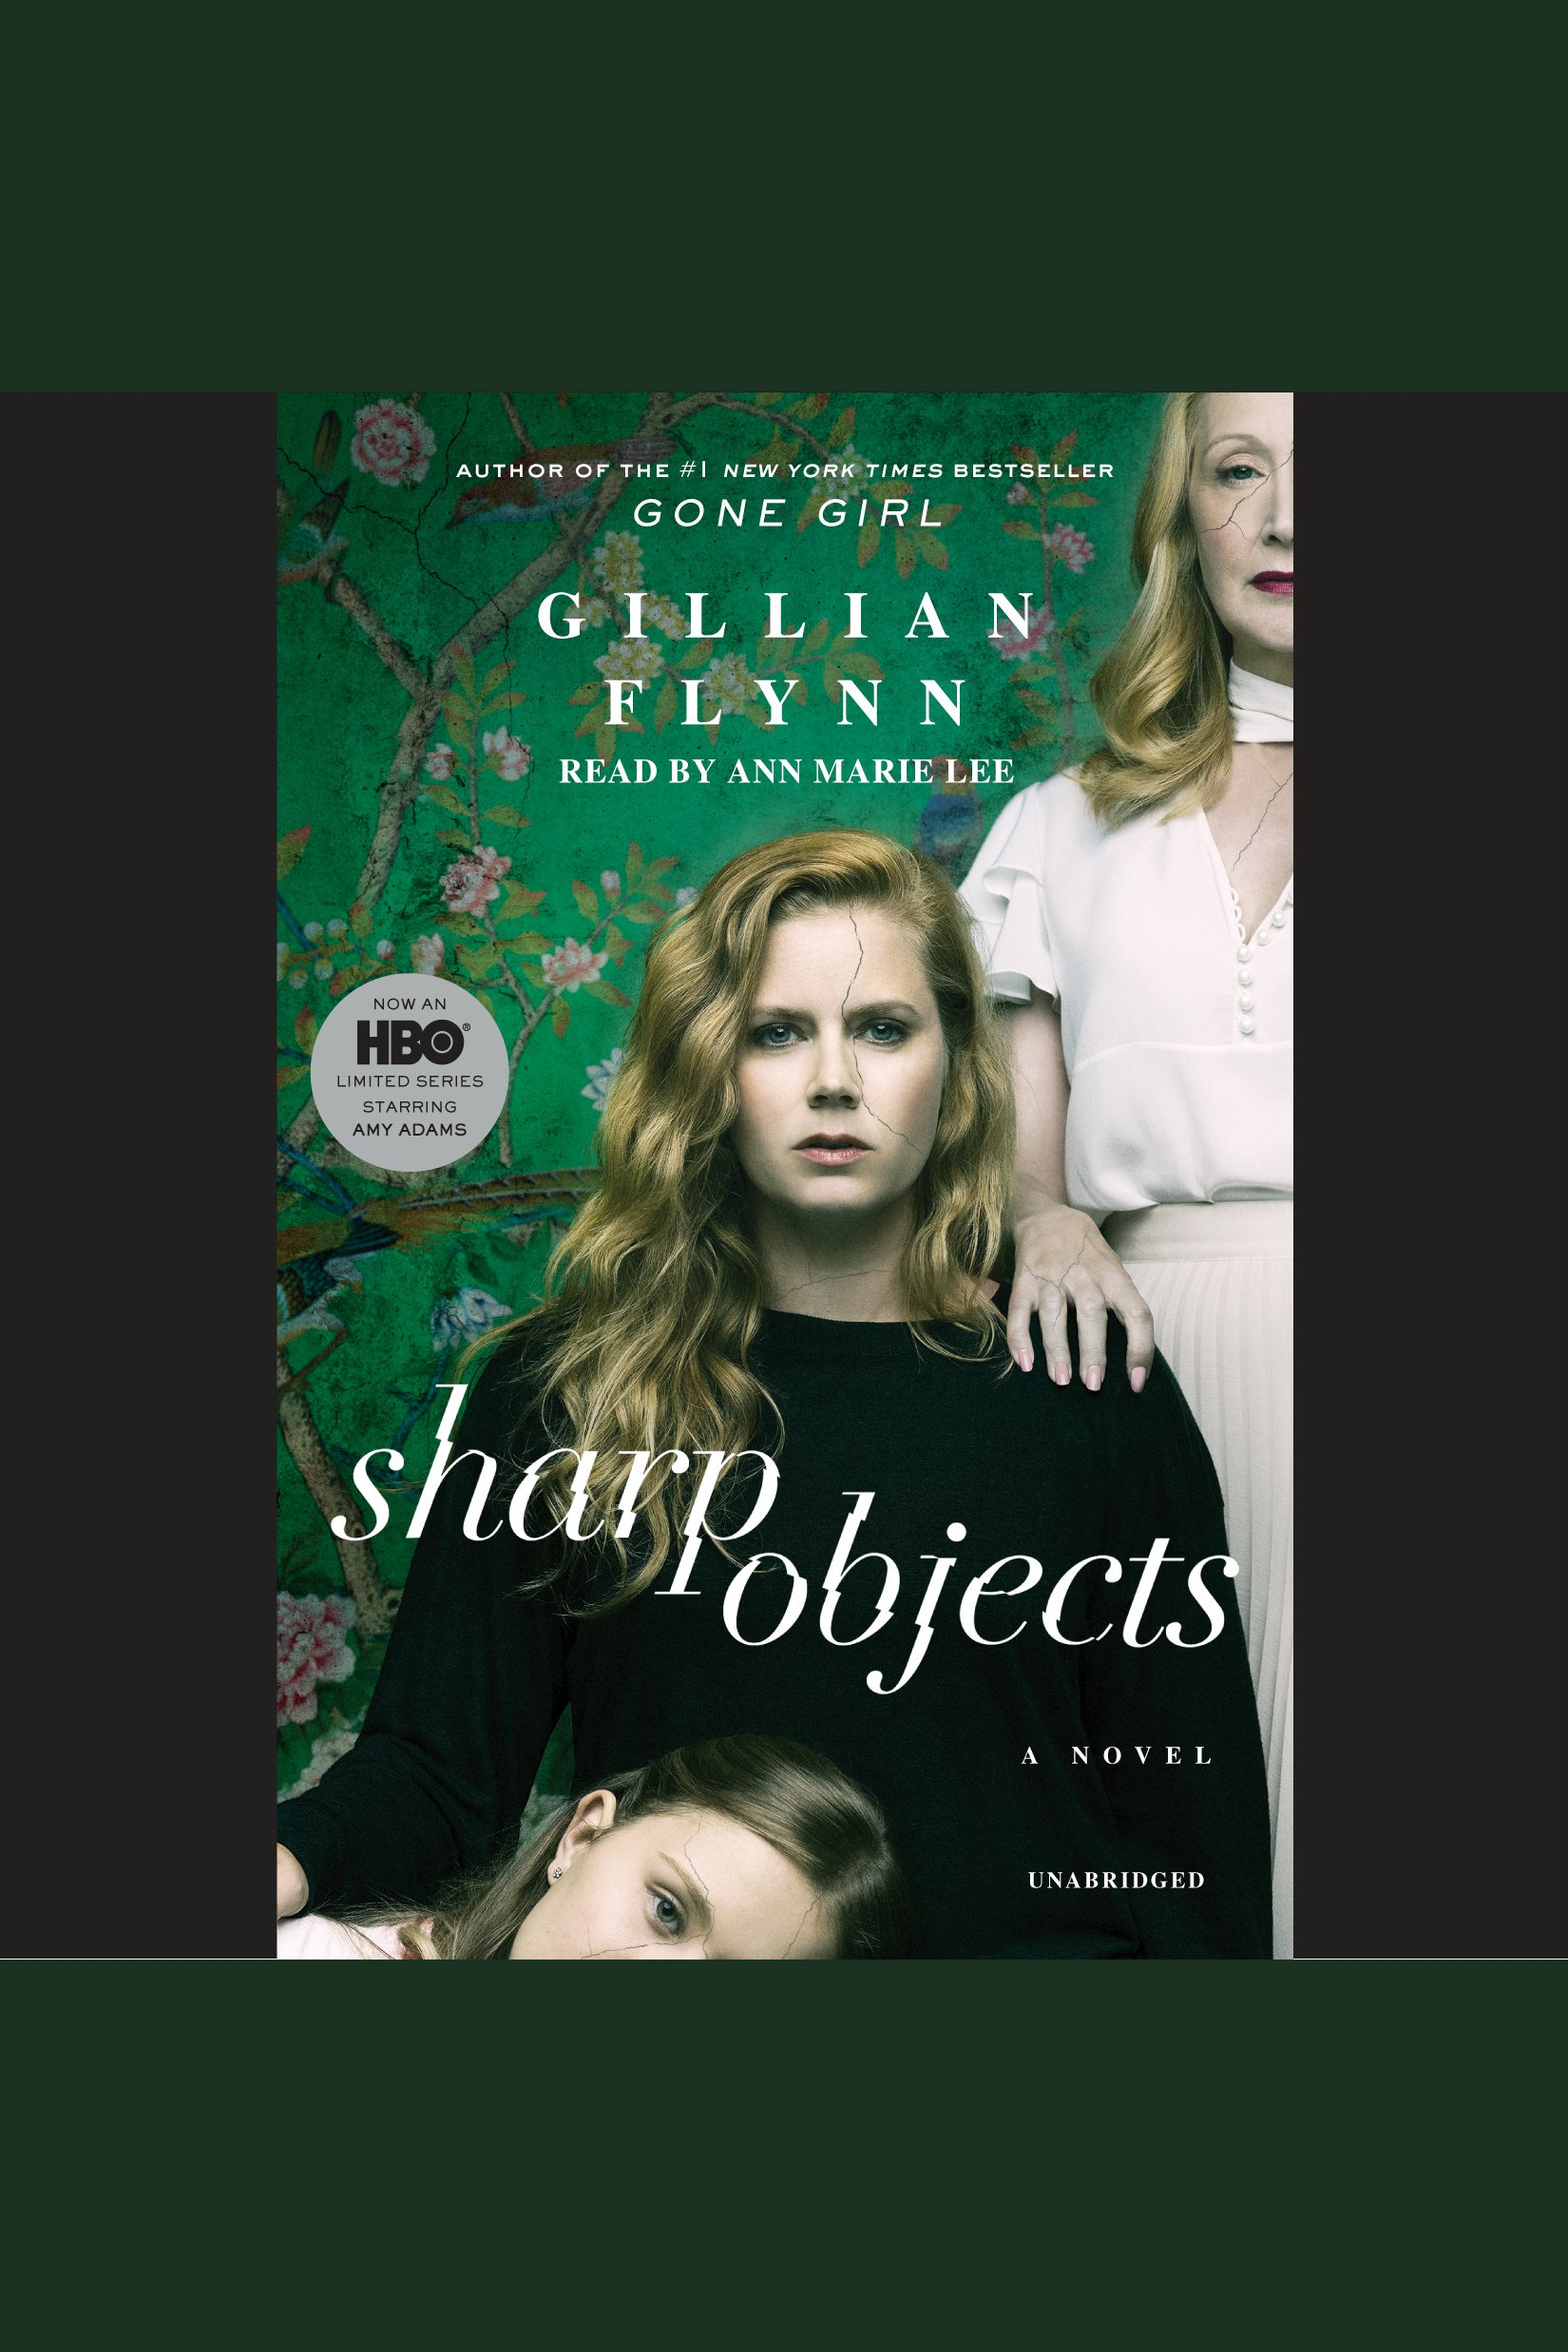 Sharp objects cover image